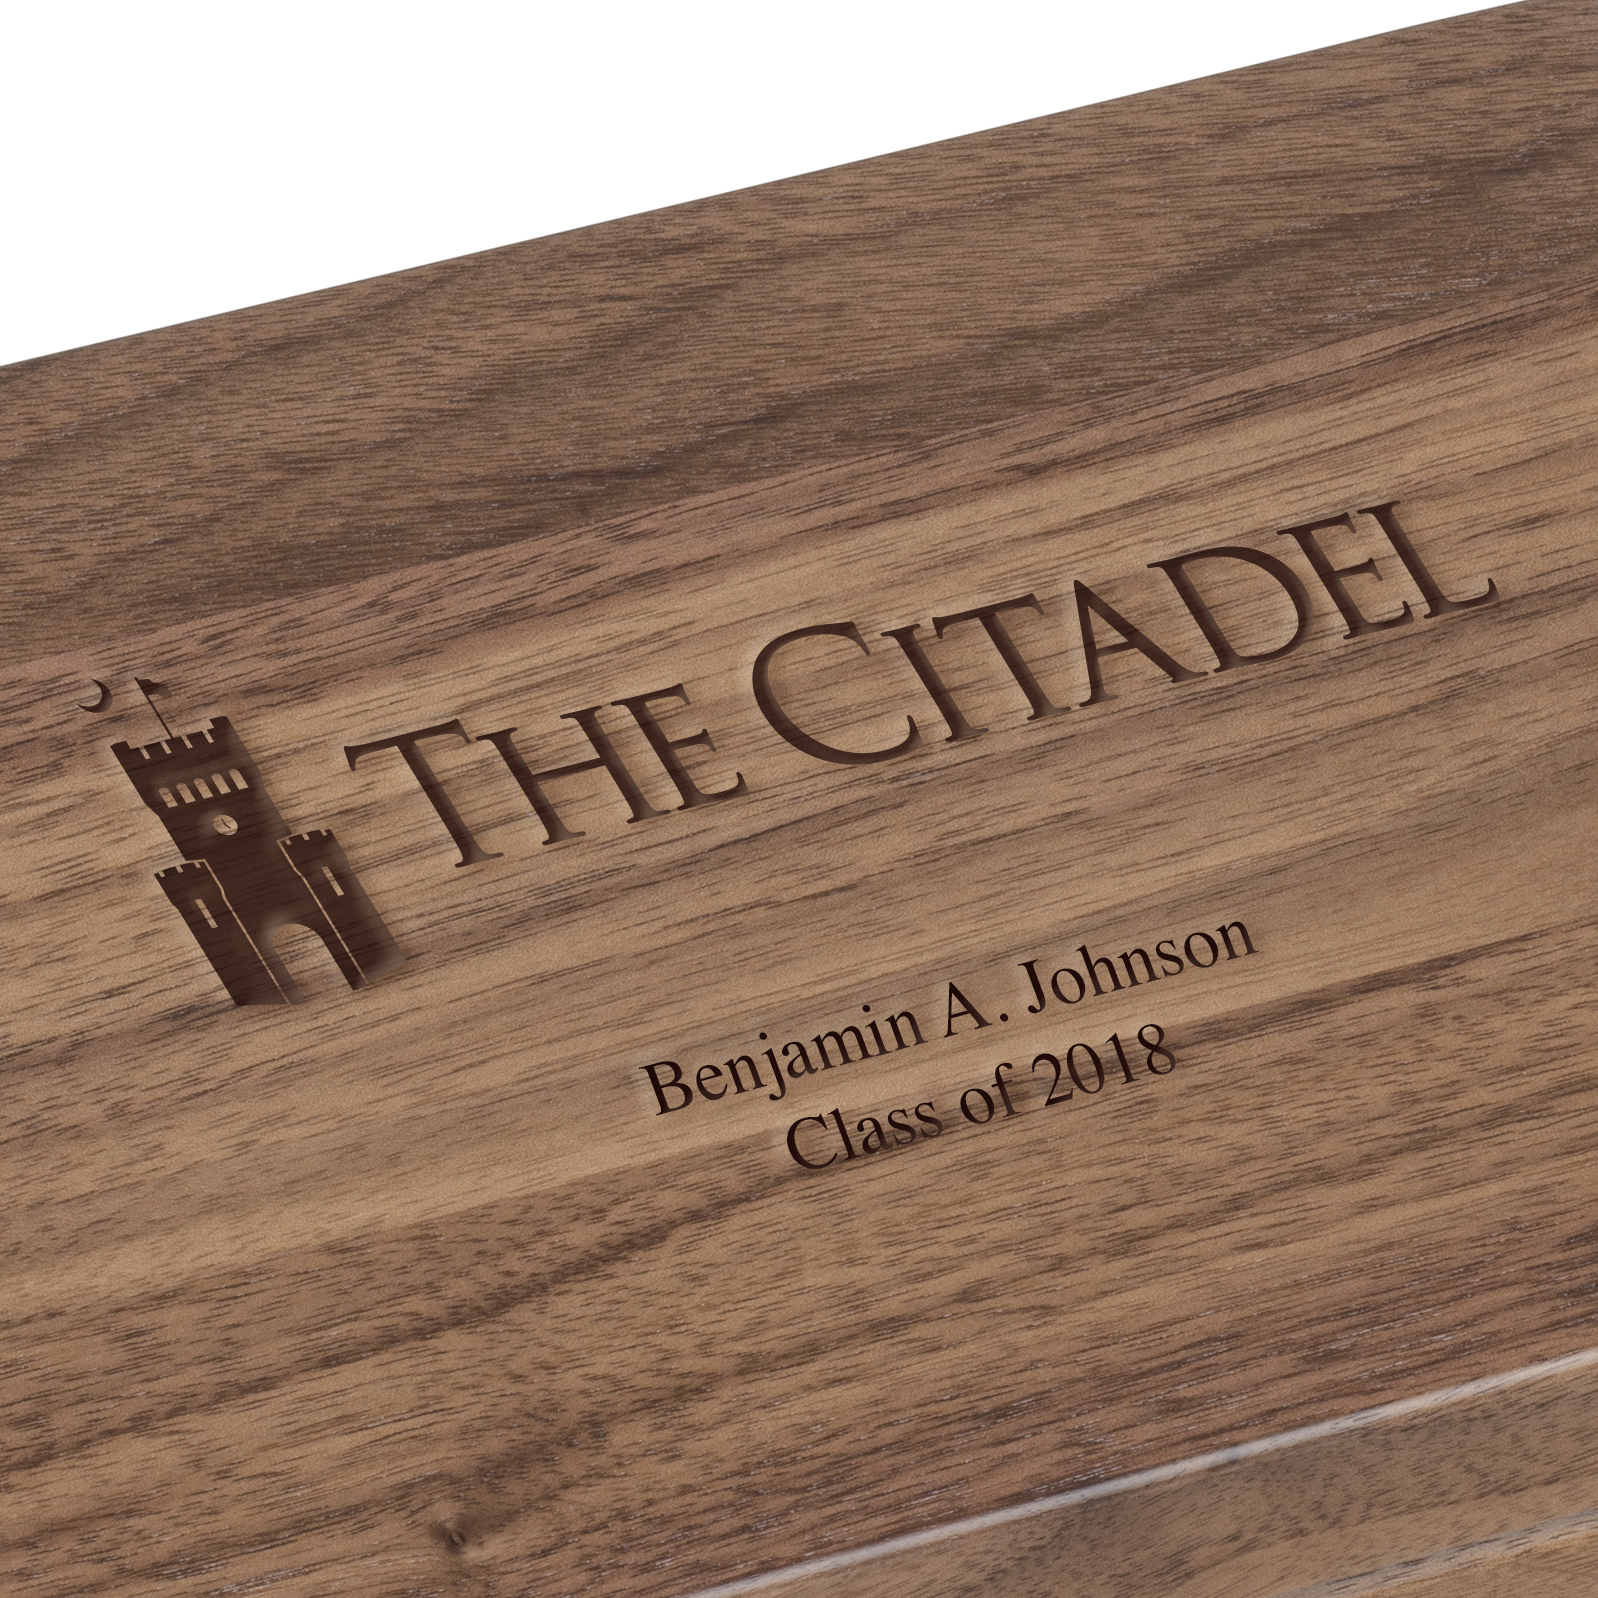 Citadel Solid Walnut Desk Box - Image 2